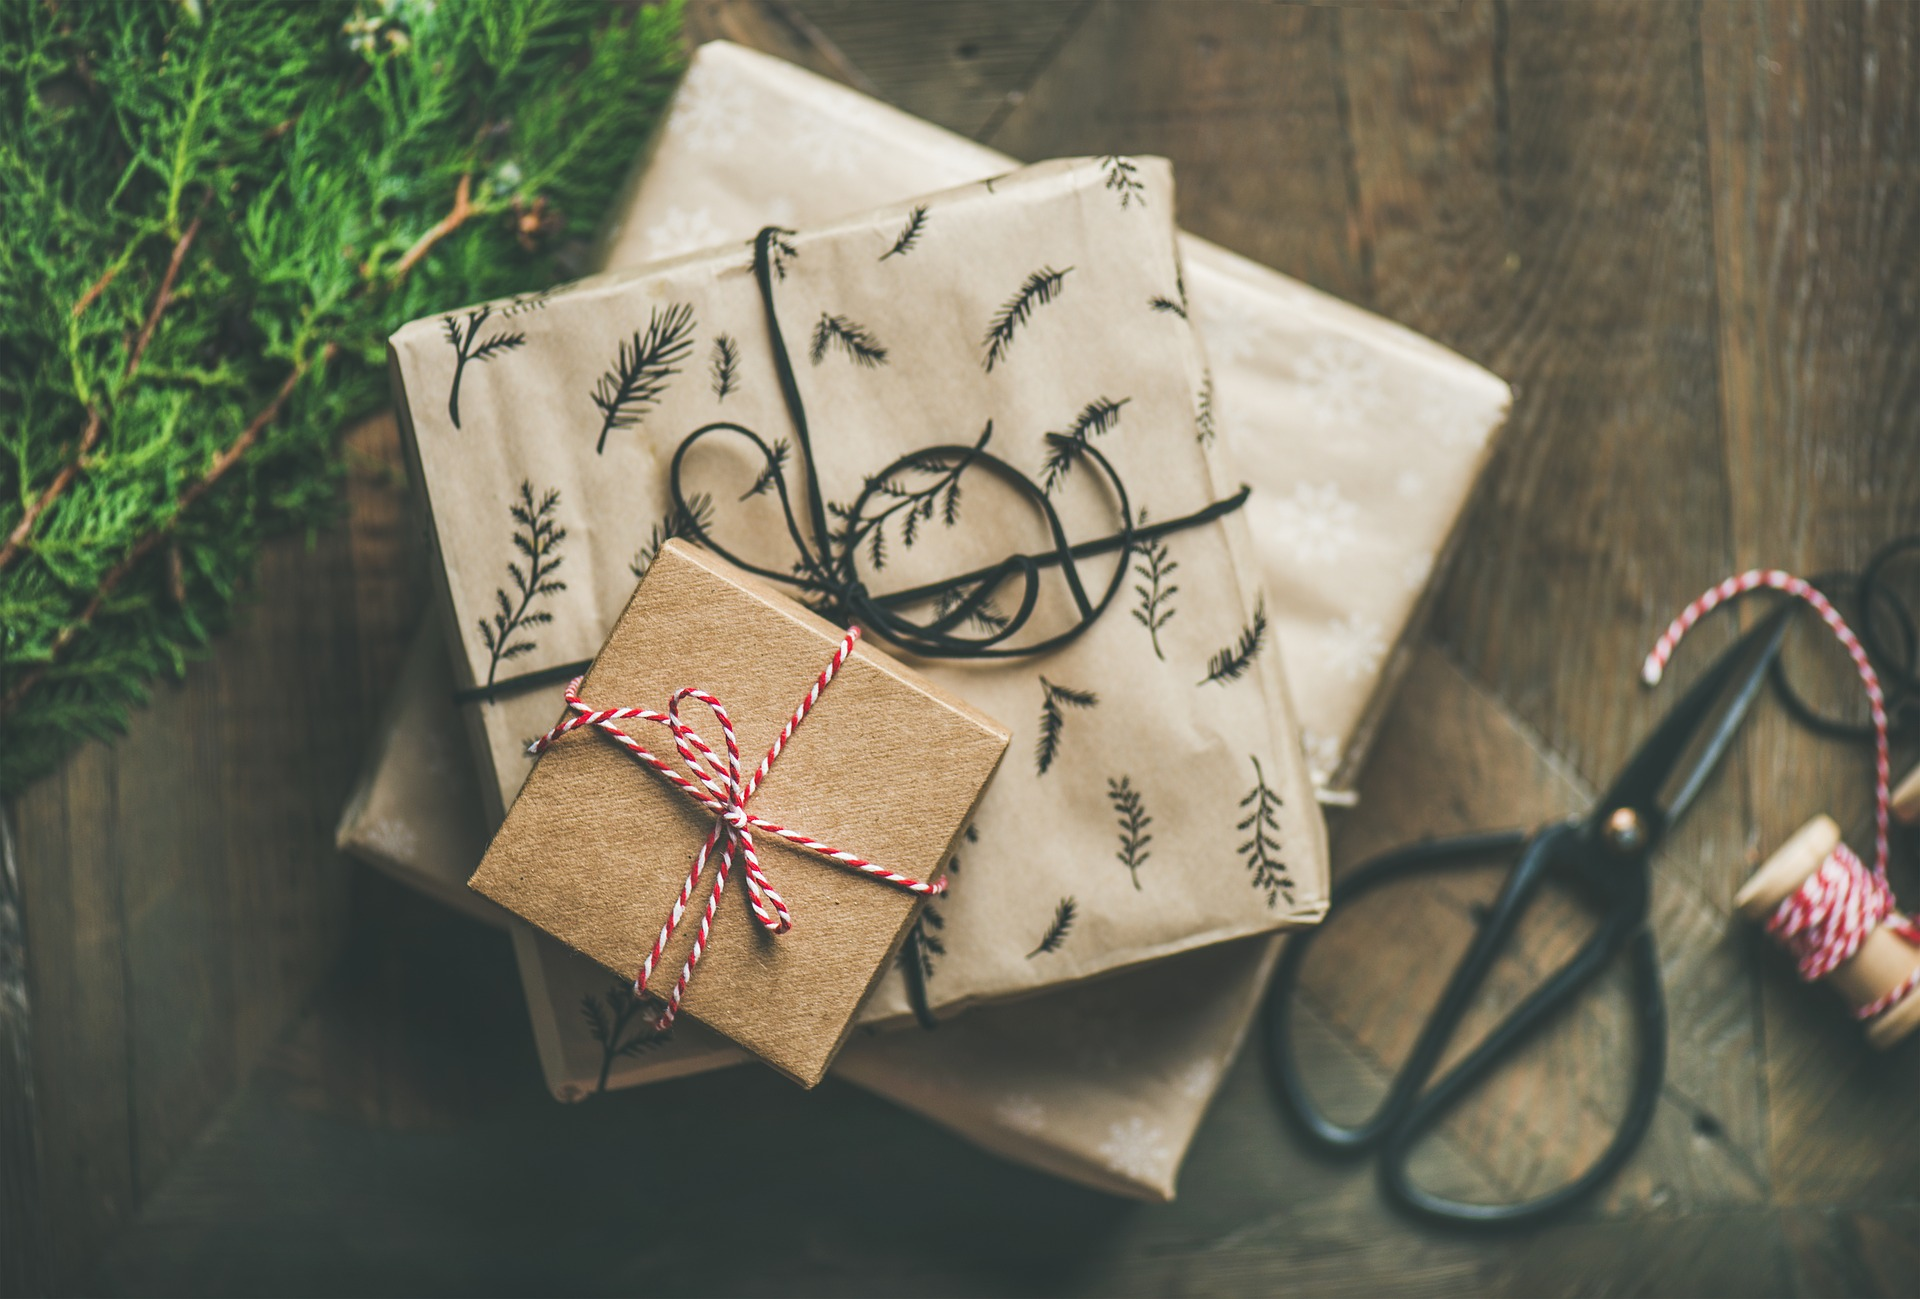 Musings on Christmas Giving